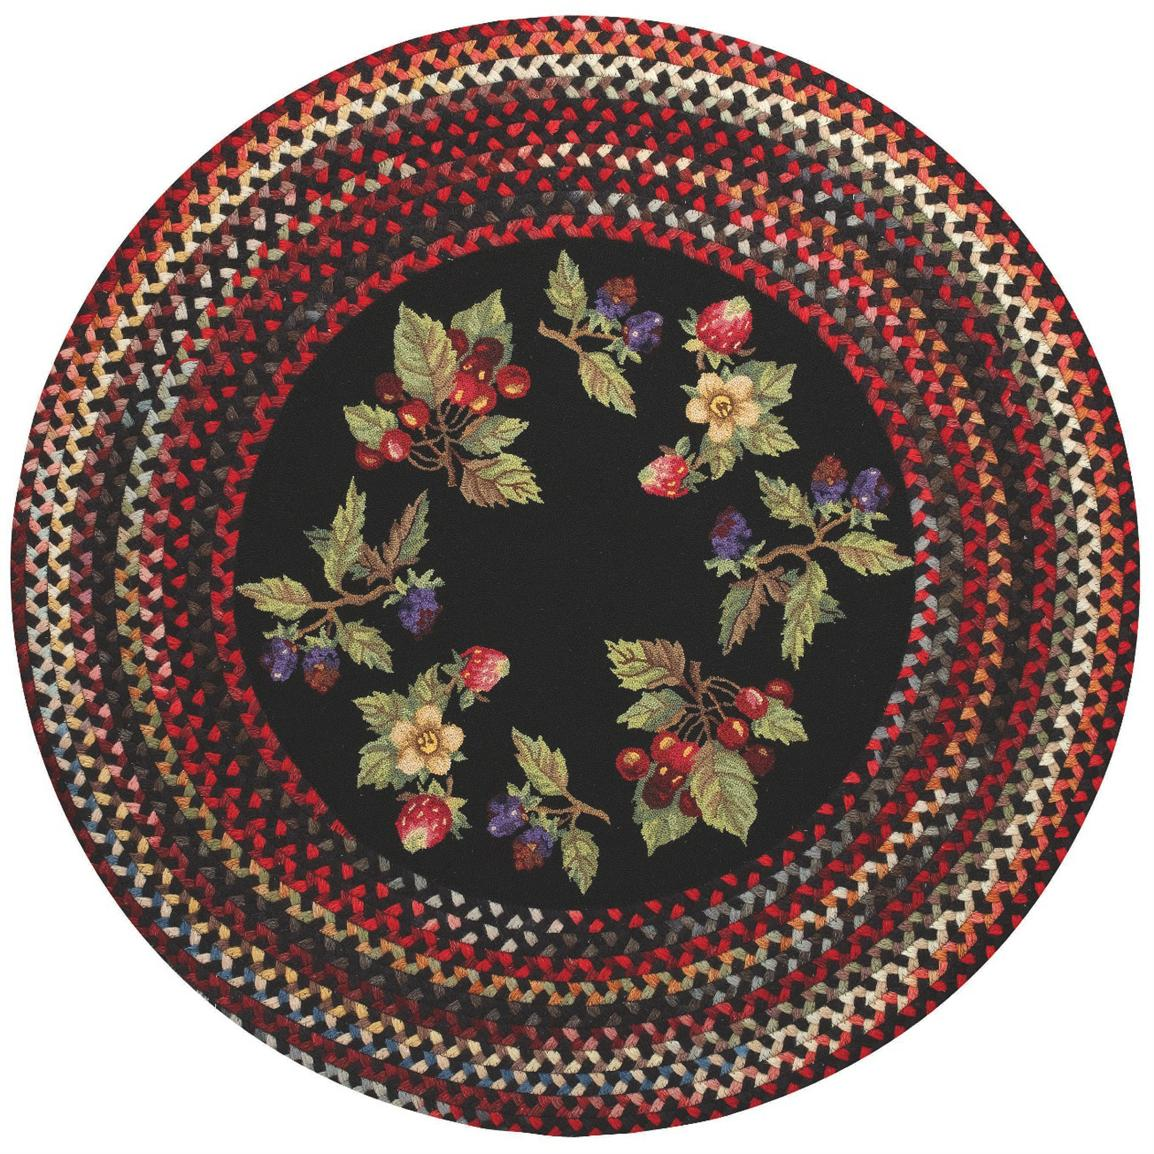 Capel Somewhere In Time Round Berry Patch Rug